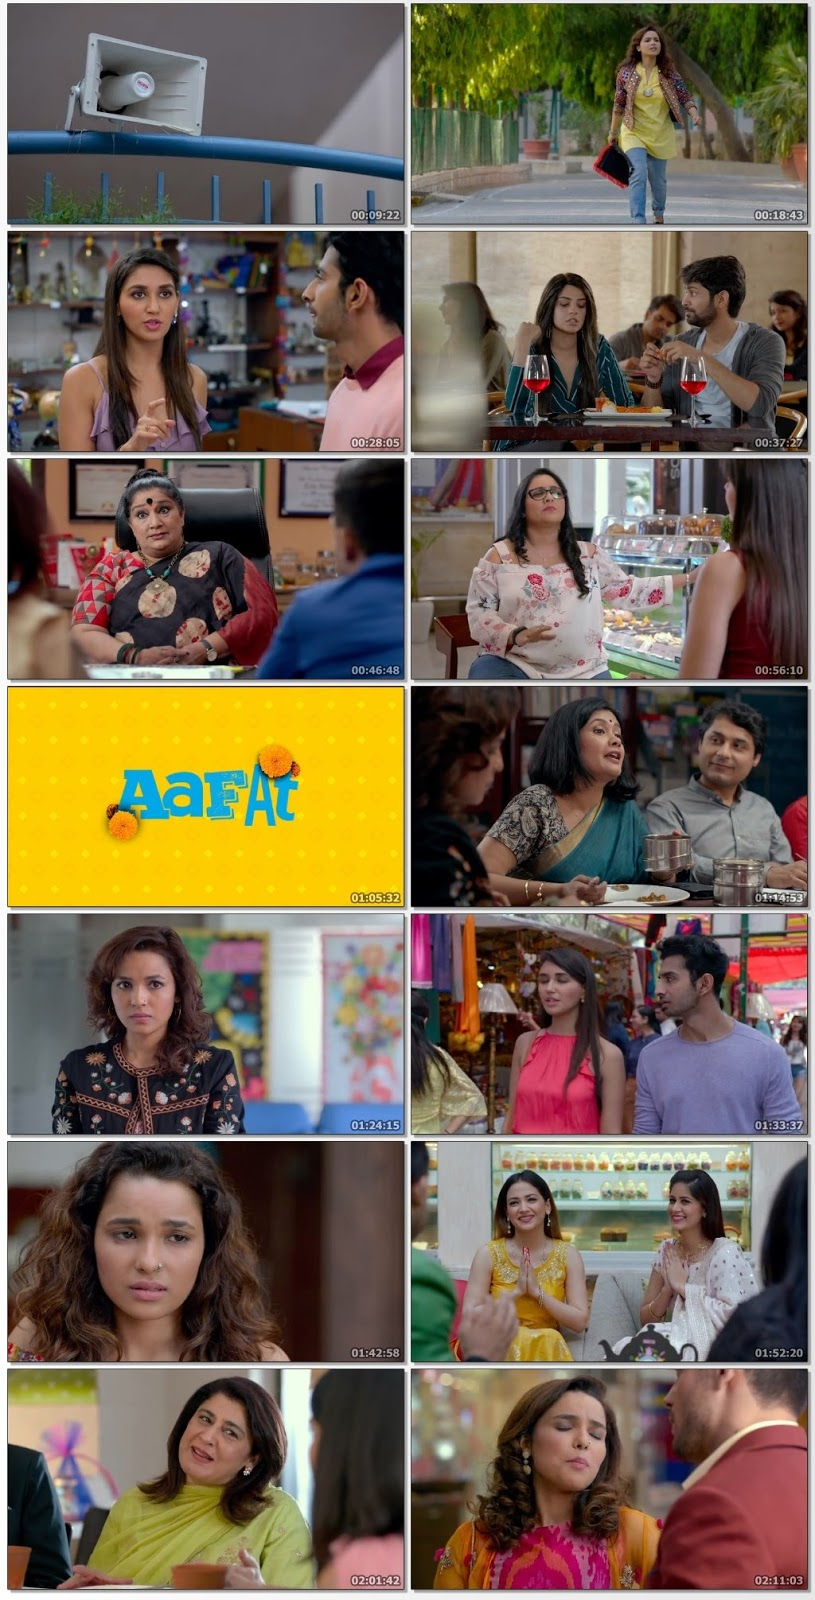 Aafat Season 1 download 480p, Aafat Season 1 download 720p, Aafat Season 1 download 1080p, Aafat Season 1 download free